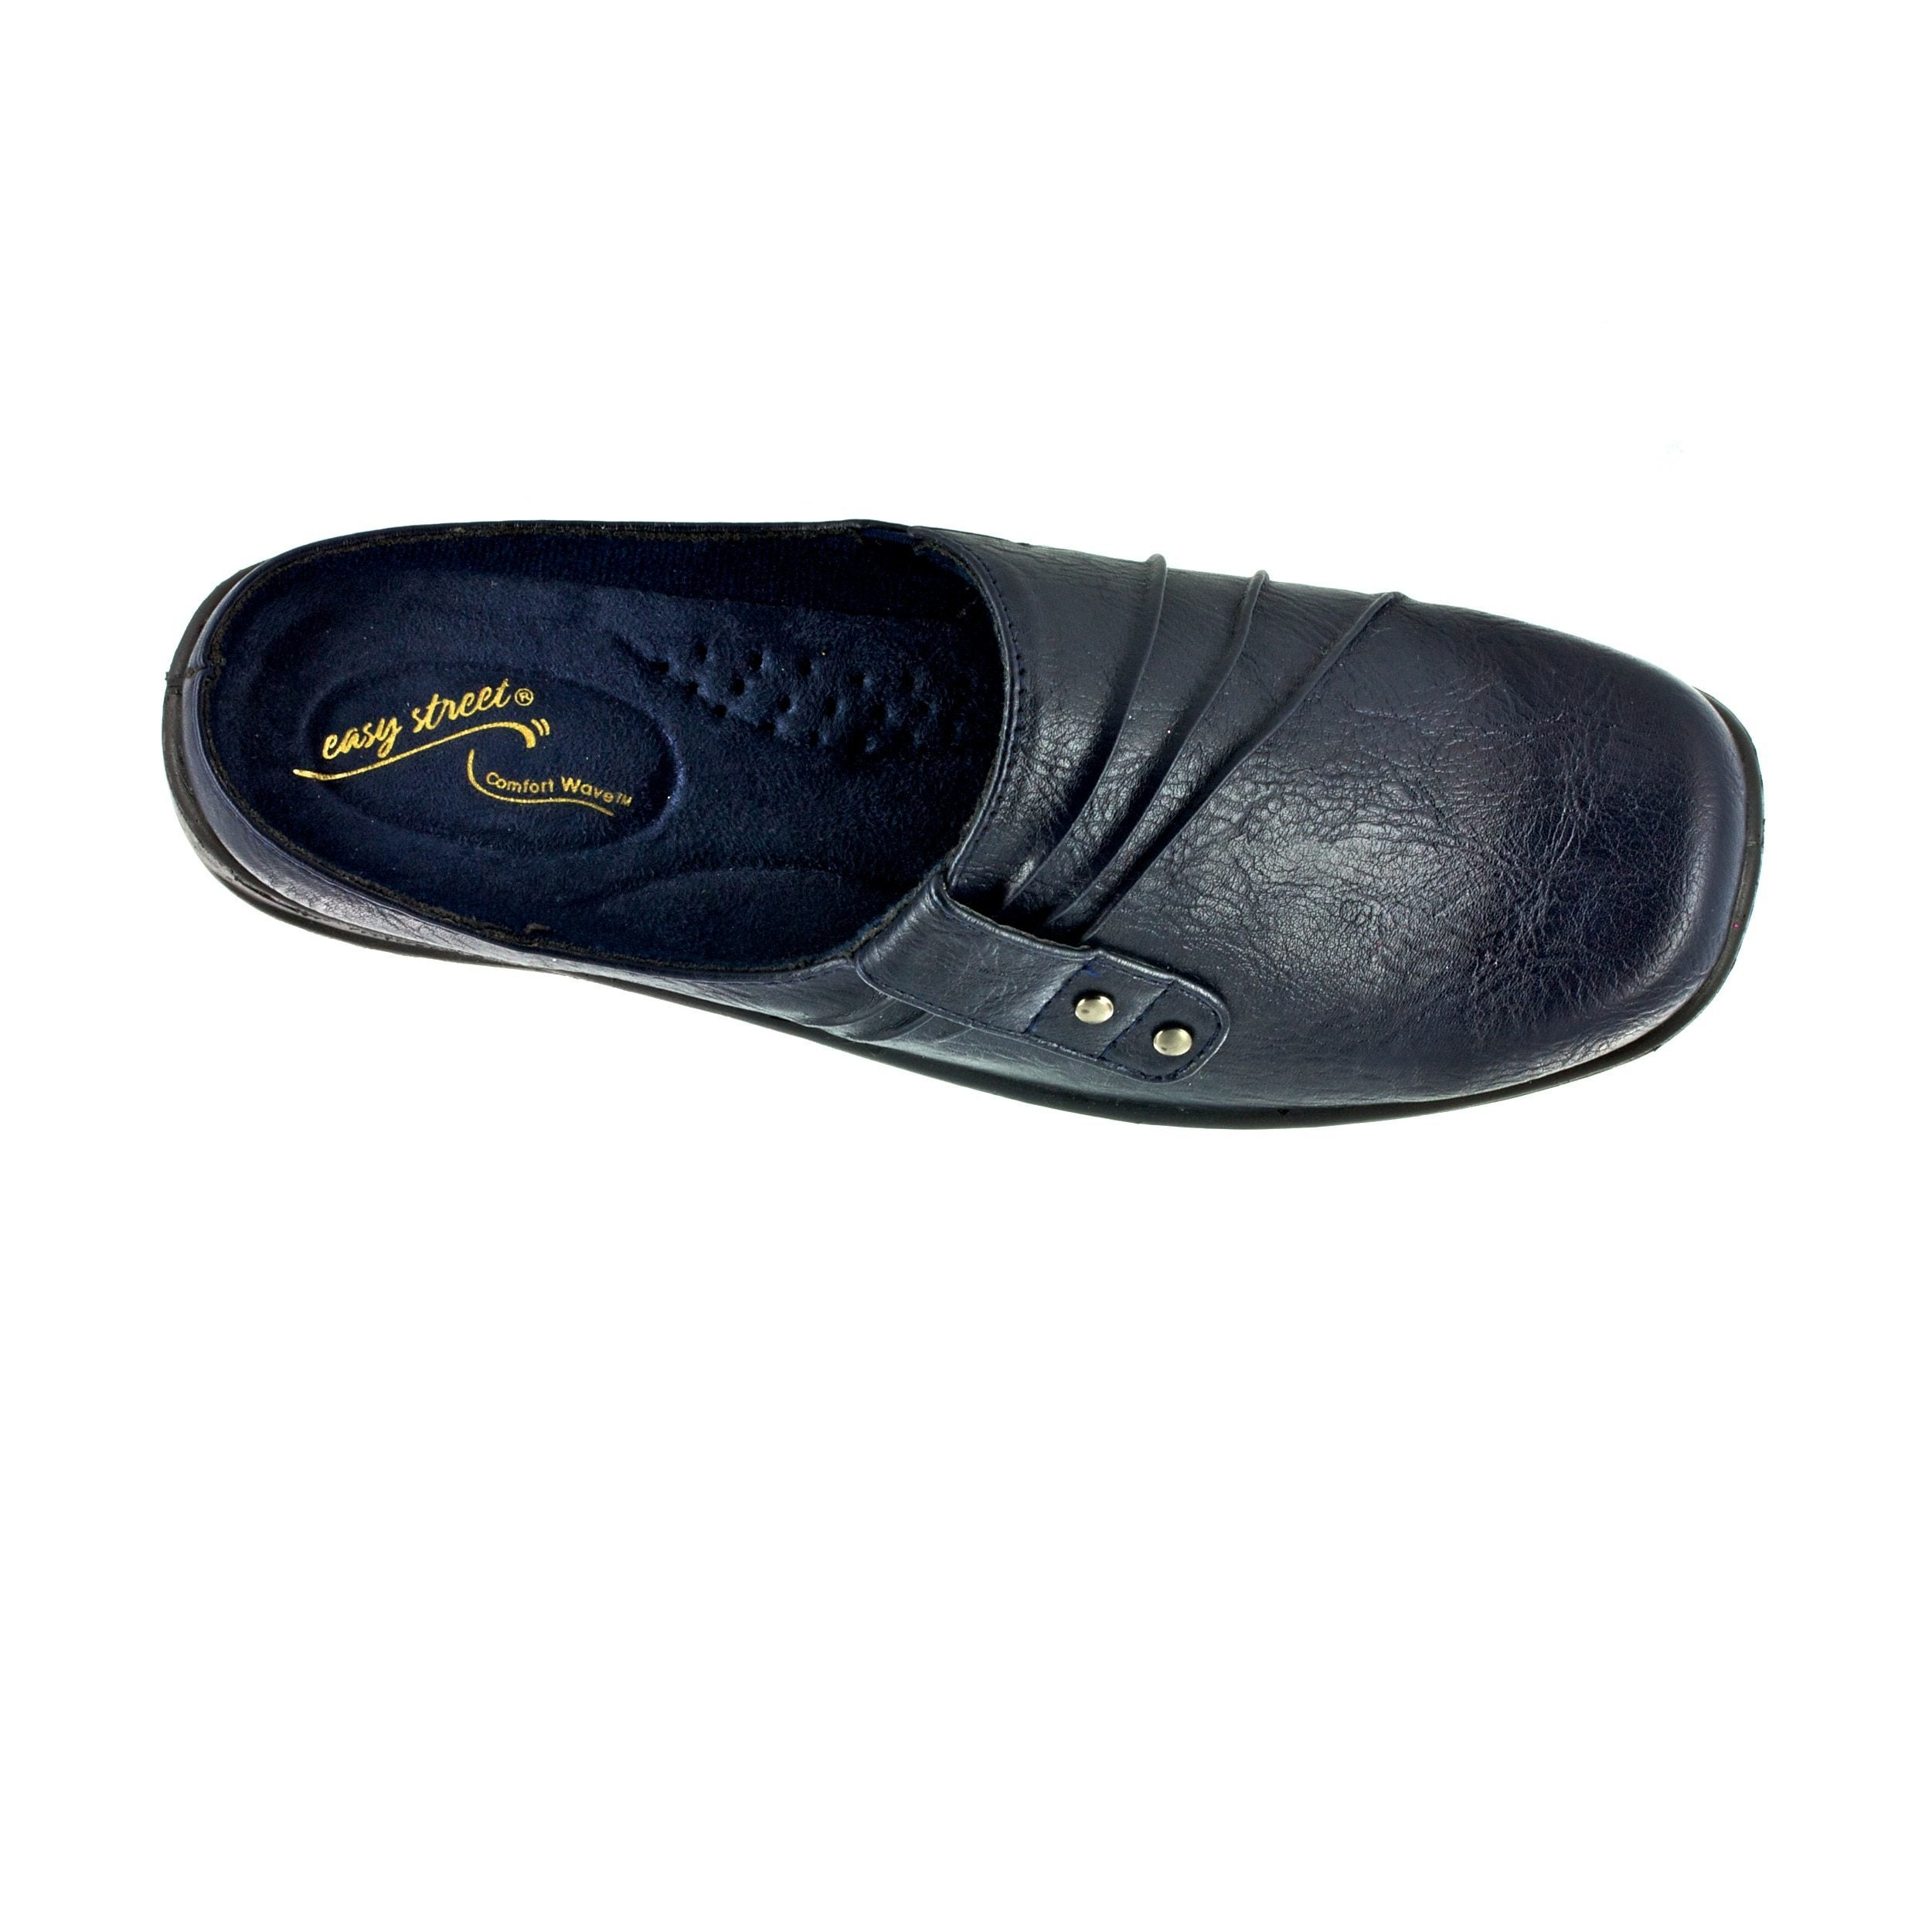 4cb0d7d705 Shop Easy Street Women s Holly Comfort Clog (Navy) - Free Shipping Today -  Overstock.com - 16994426